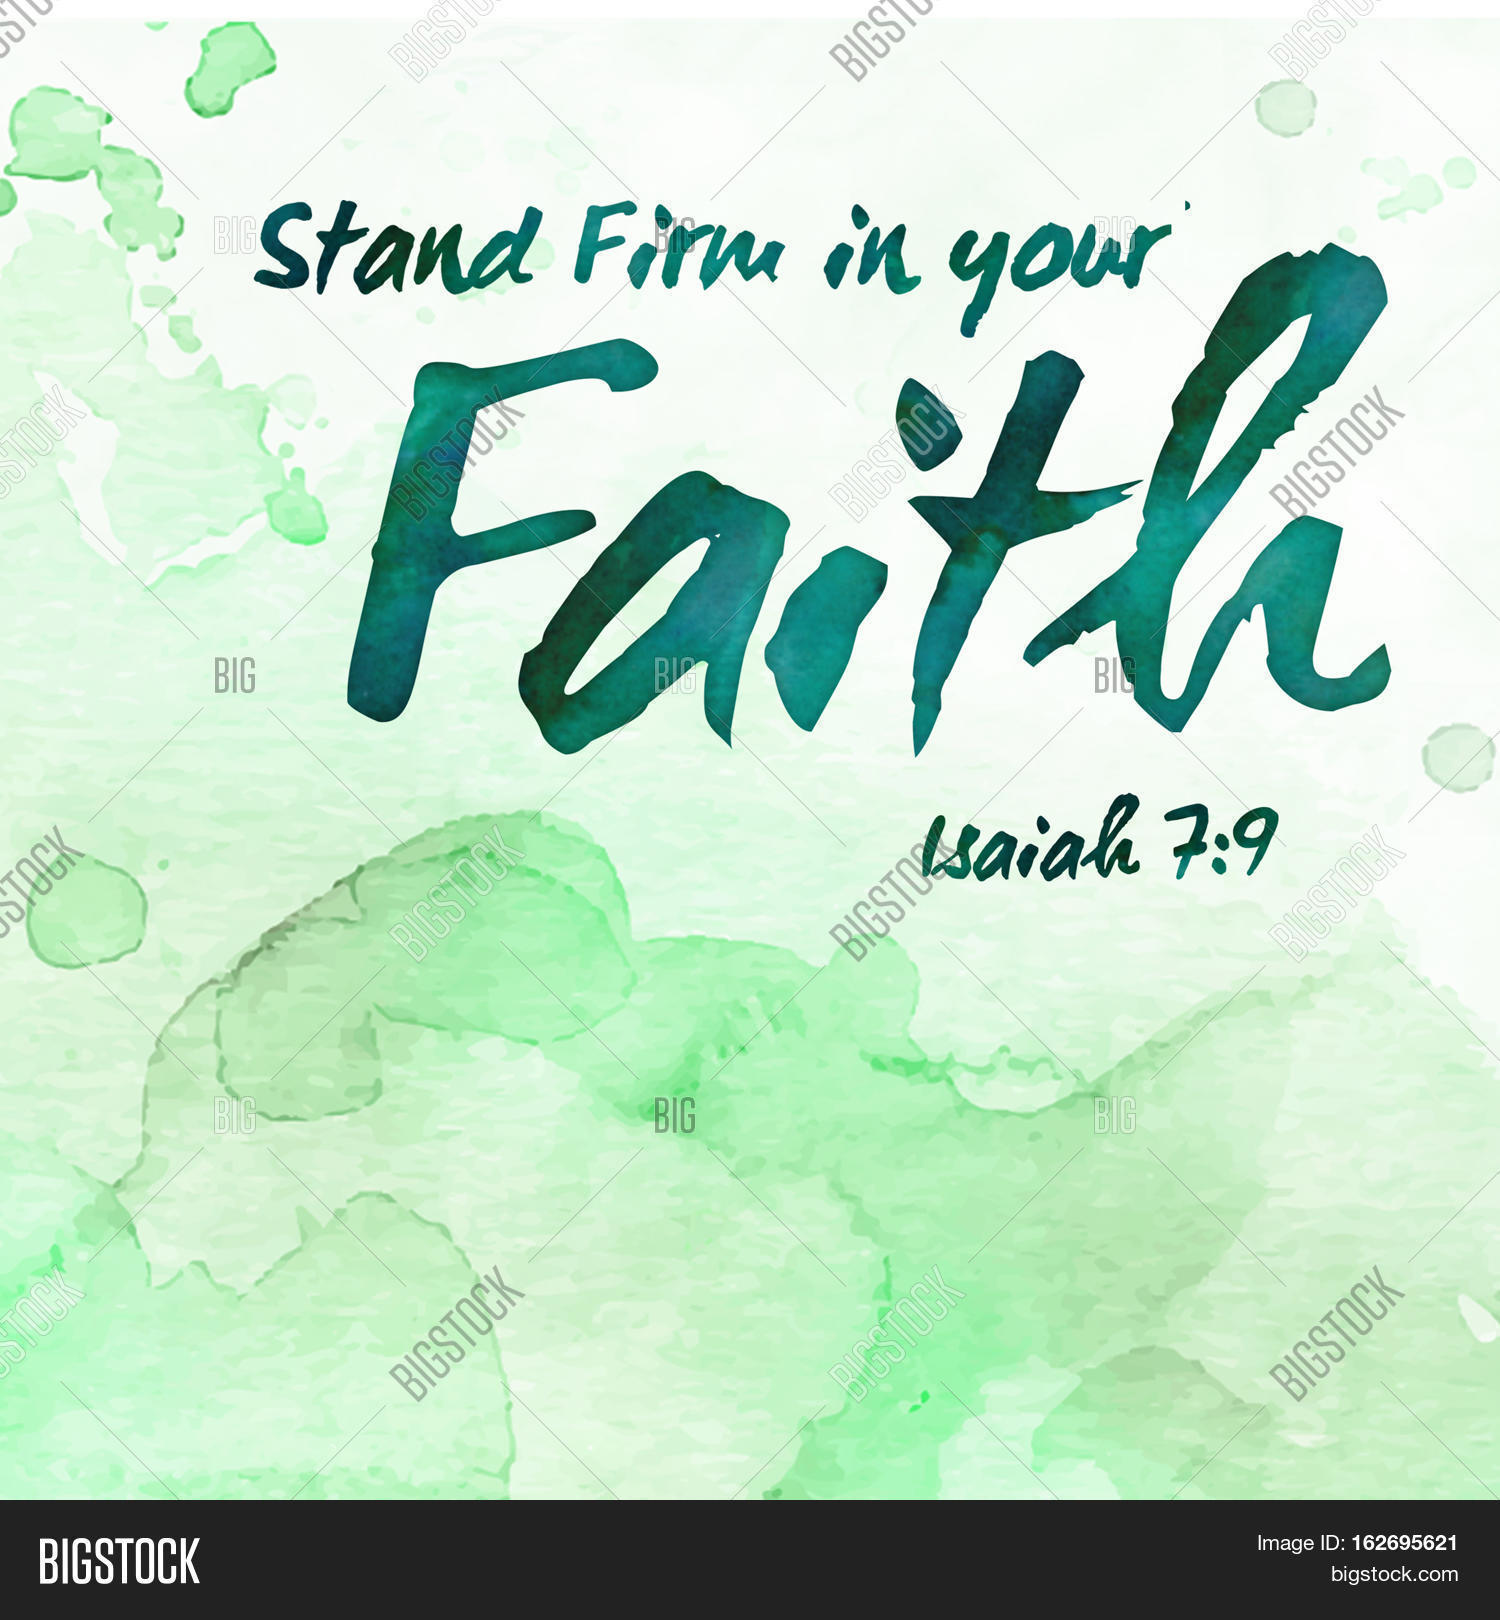 Stand Firm Your Faith Image & Photo (Free Trial) | Bigstock